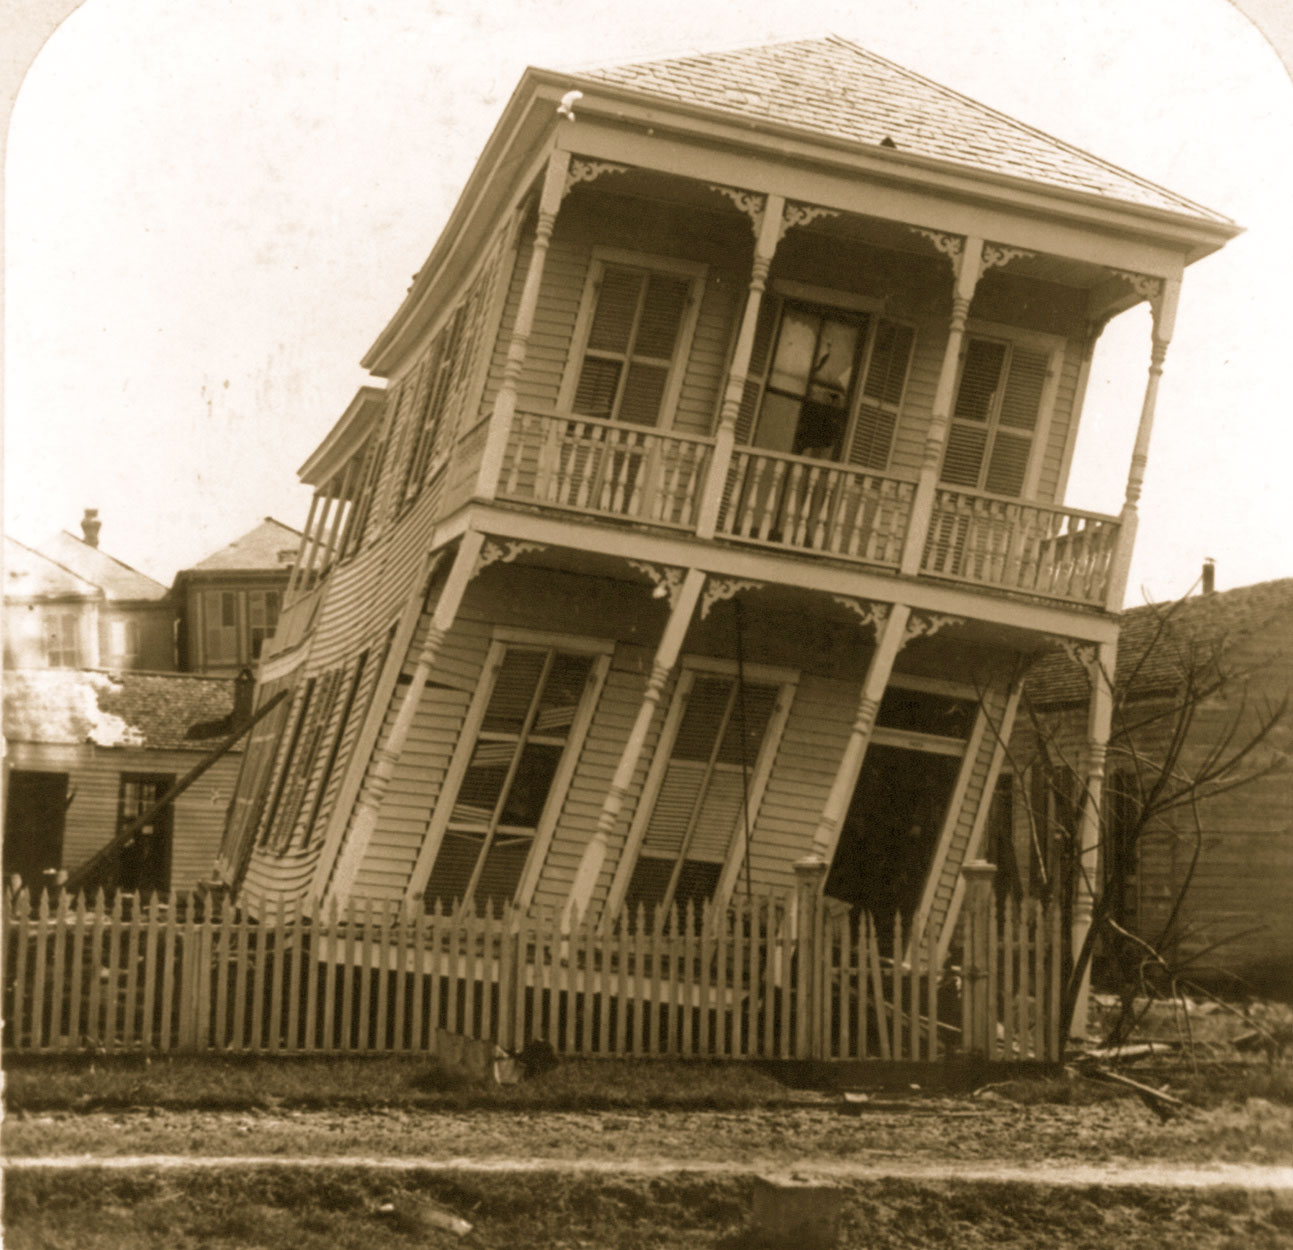 #3: 1900 Galveston Hurricane